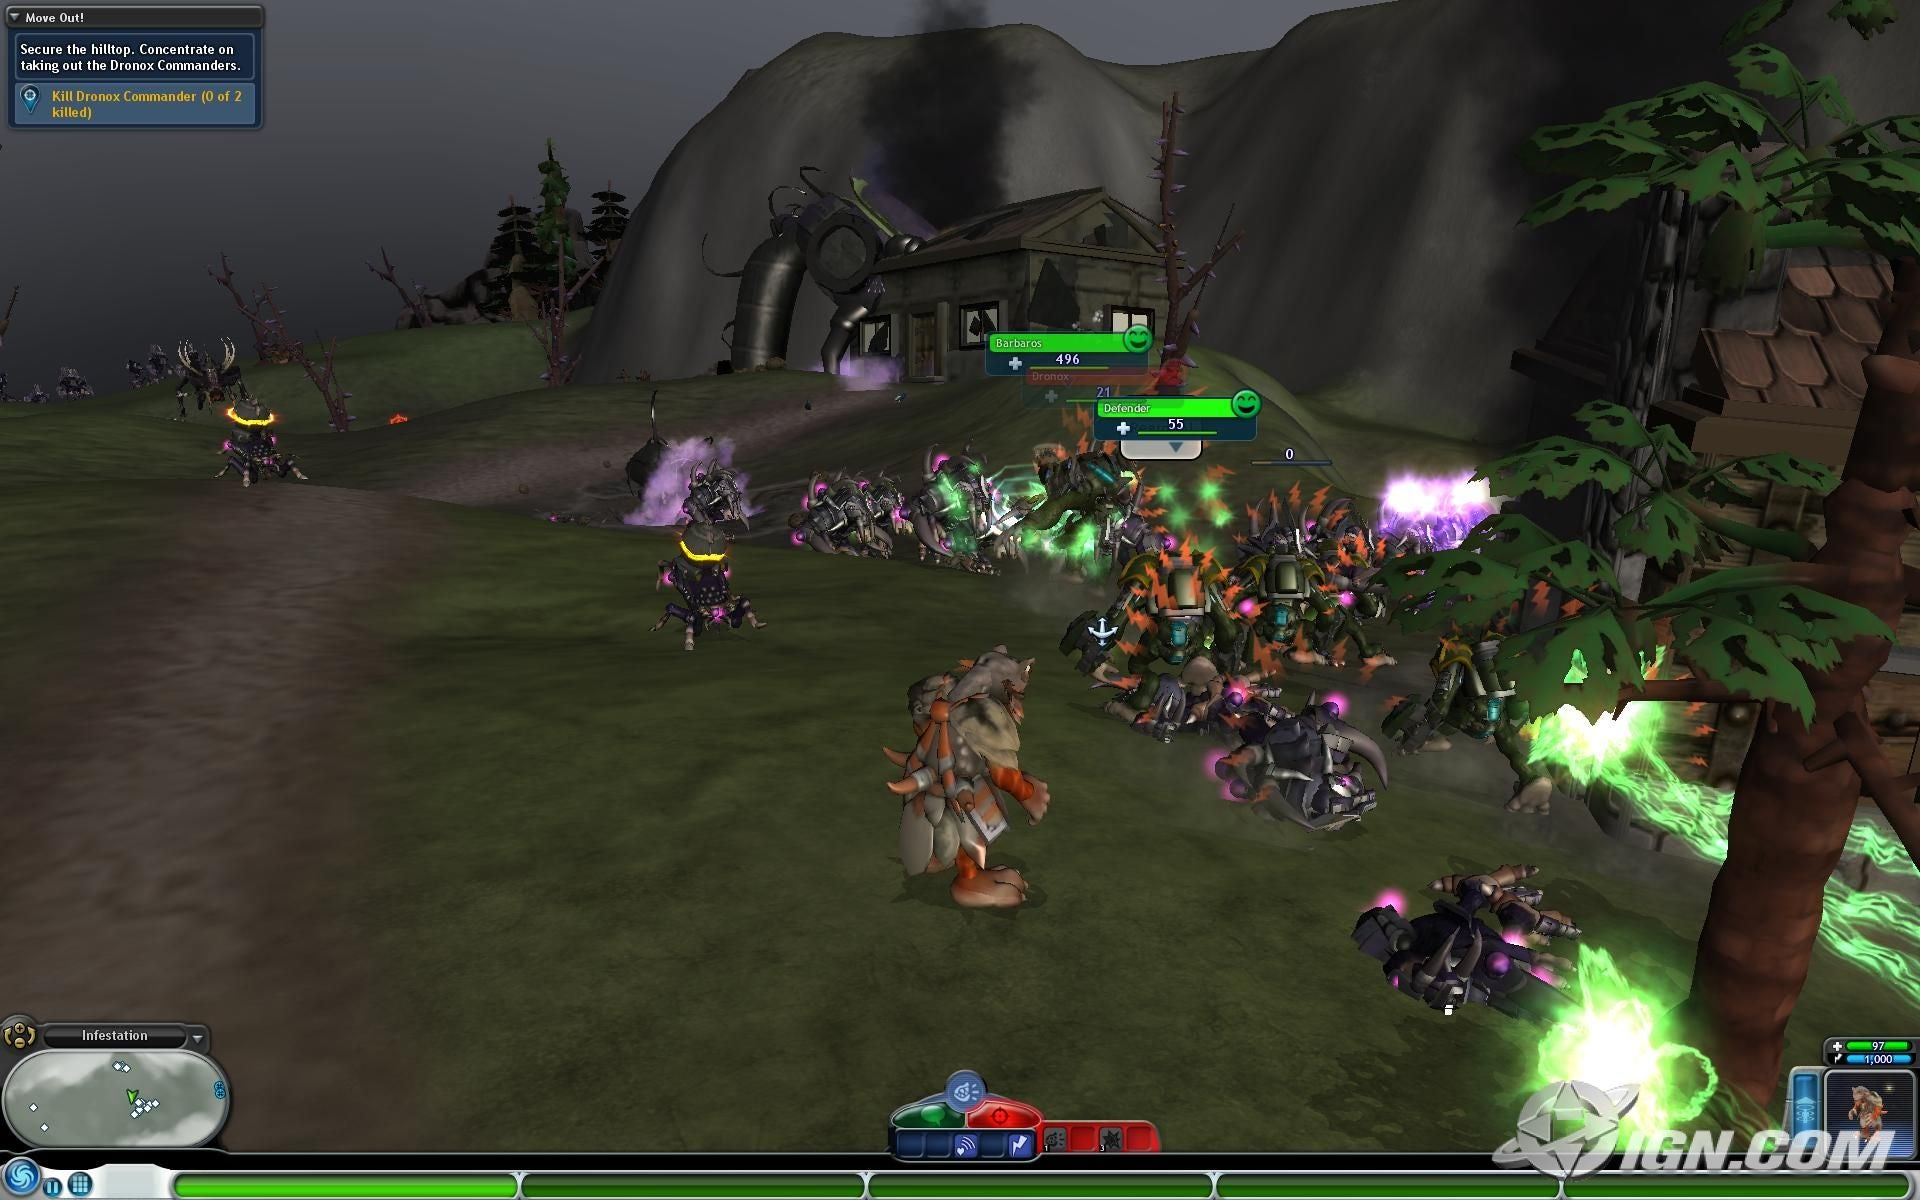 Spore: Galactic Adventures Screenshot